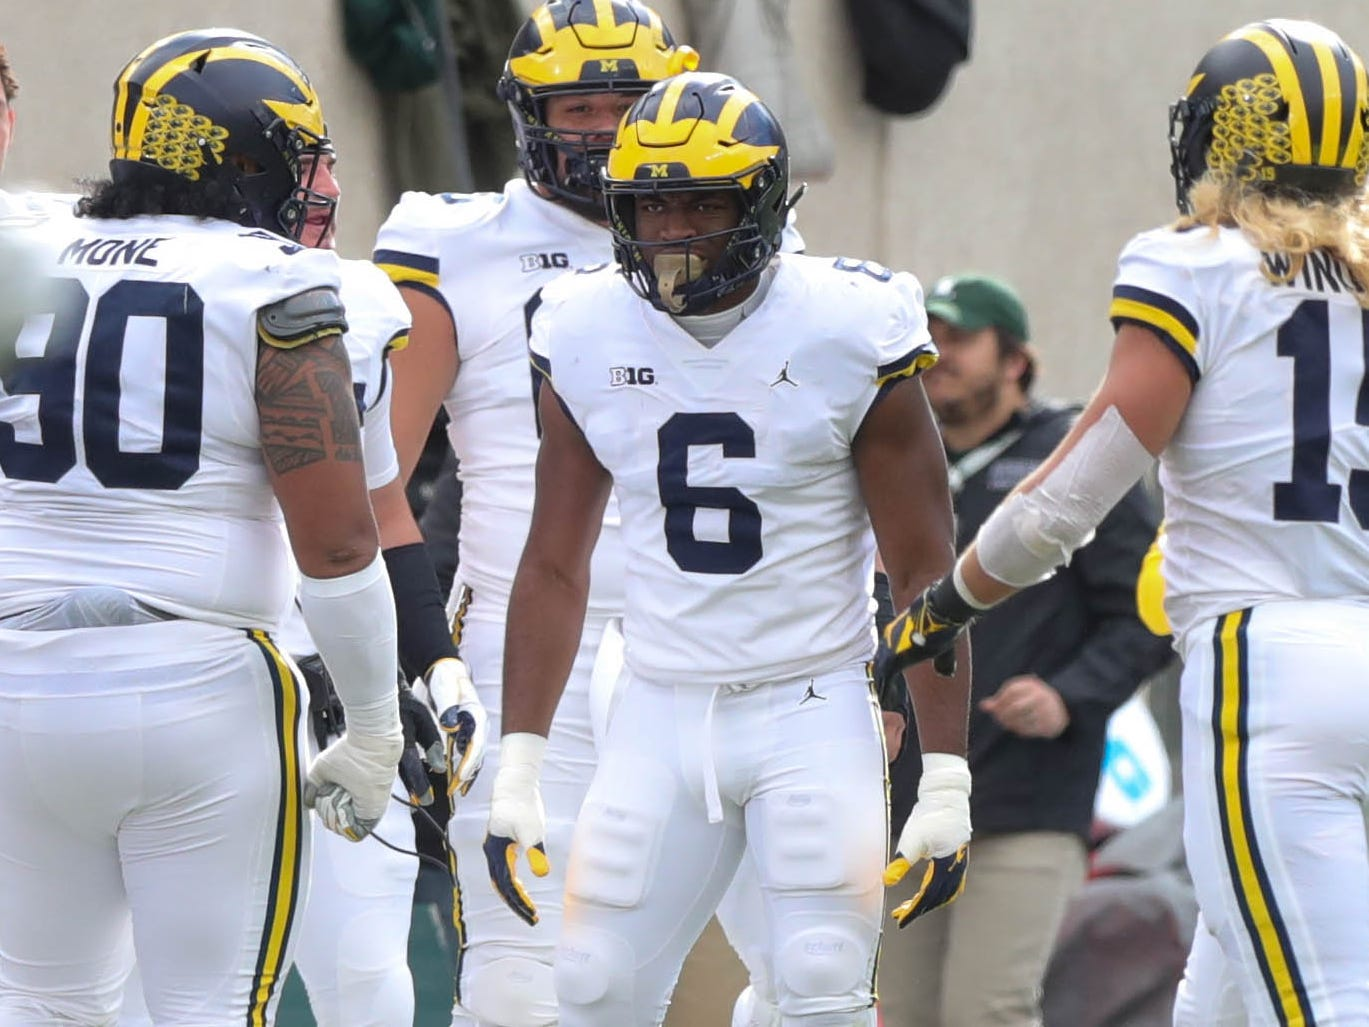 Michigan linebacker Josh Uche celebrates after a sack during the first half action against Michigan State on Saturday, Oct. 20, 2018, at Spartan Stadium.